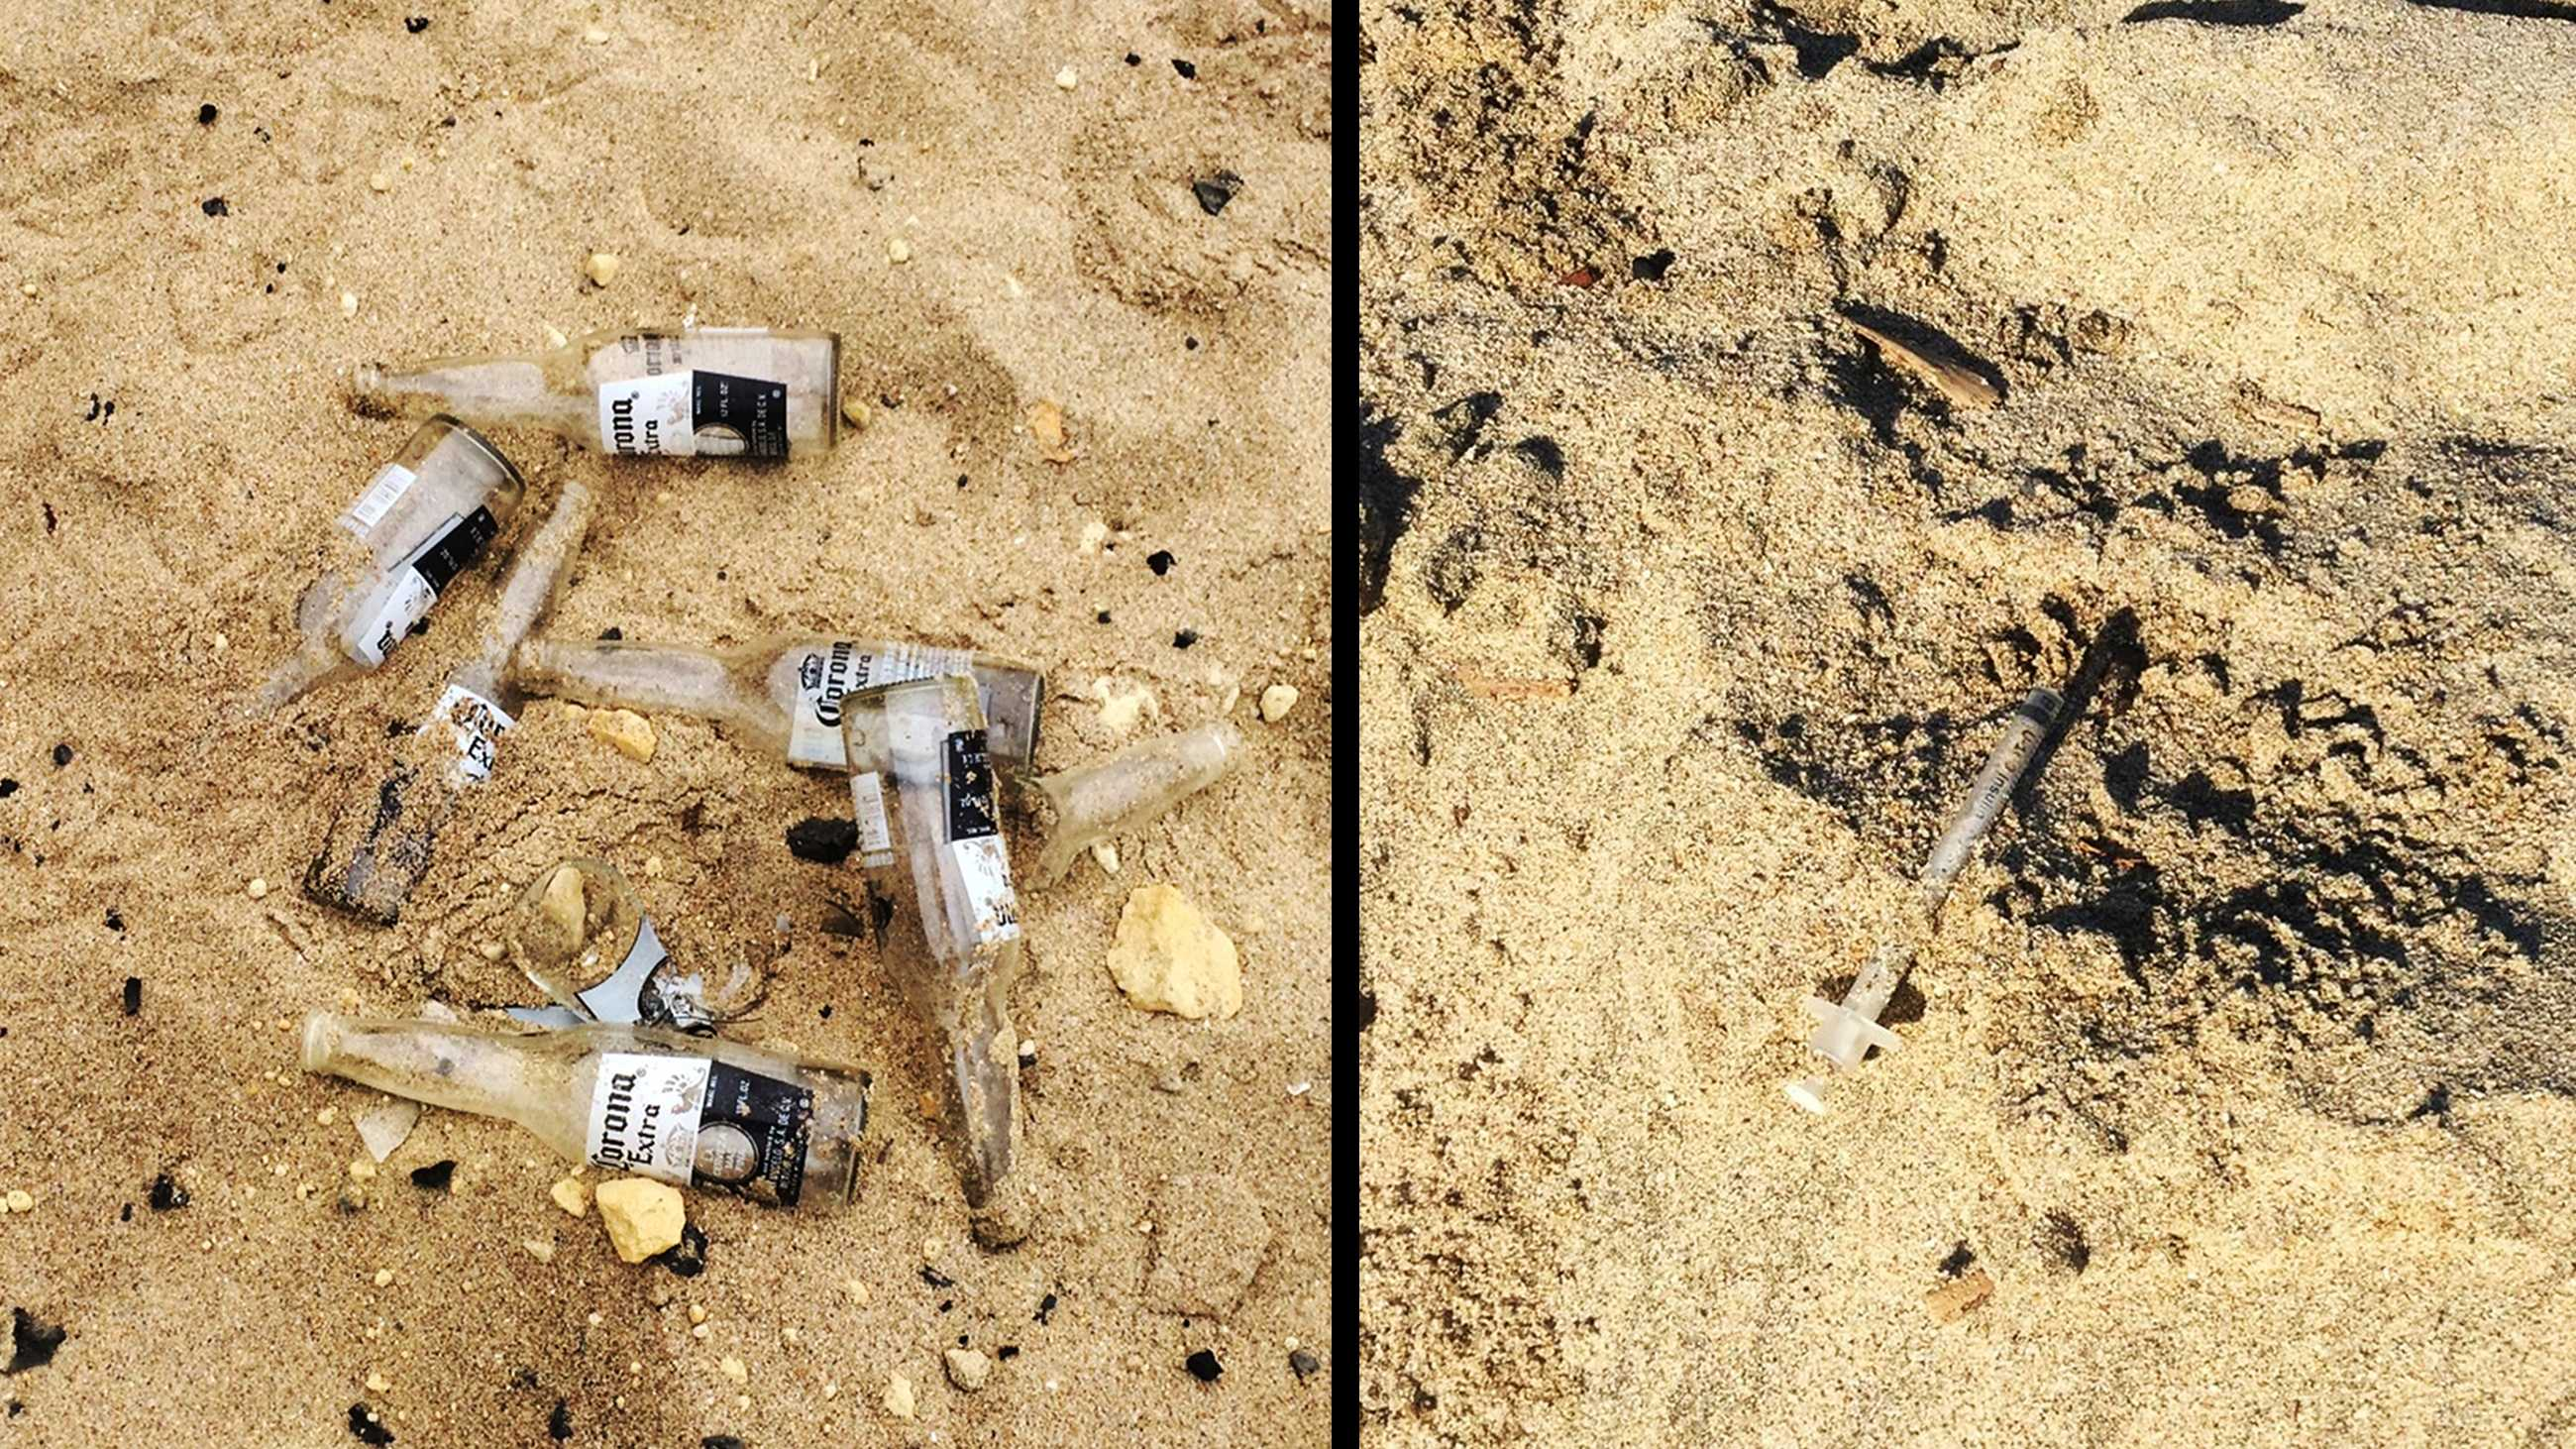 Beer bottles littered at Panther Beach, left, and a used drug needle found at Seabright Beach in Santa Cruz, right.